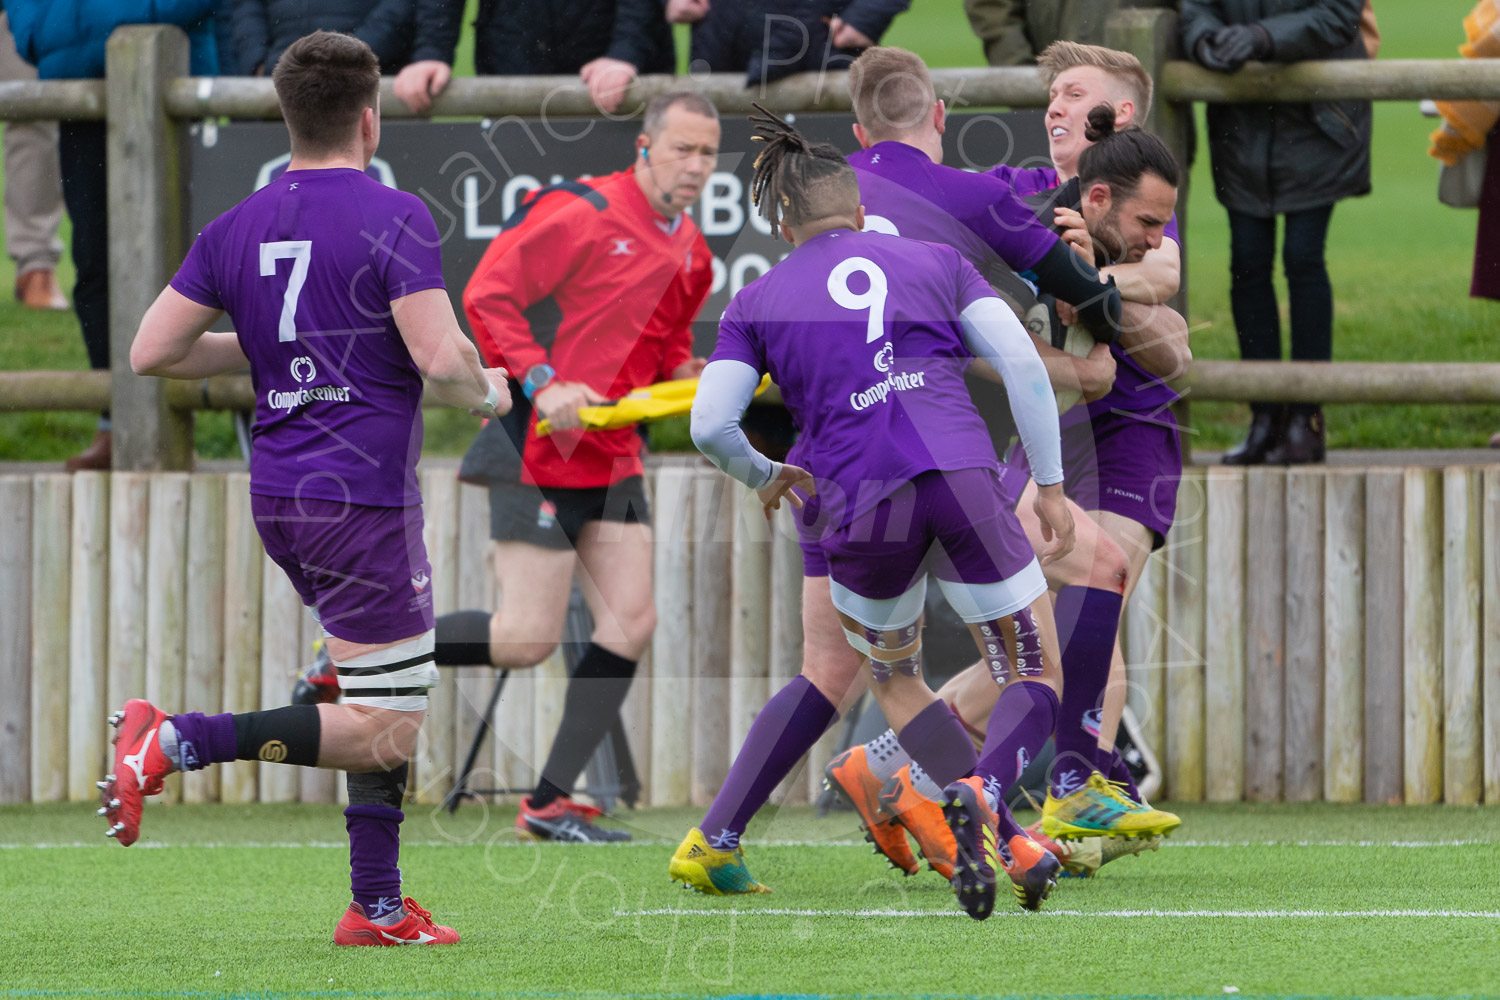 20190427 Loughborough vs Ampthill 1st XV #6114